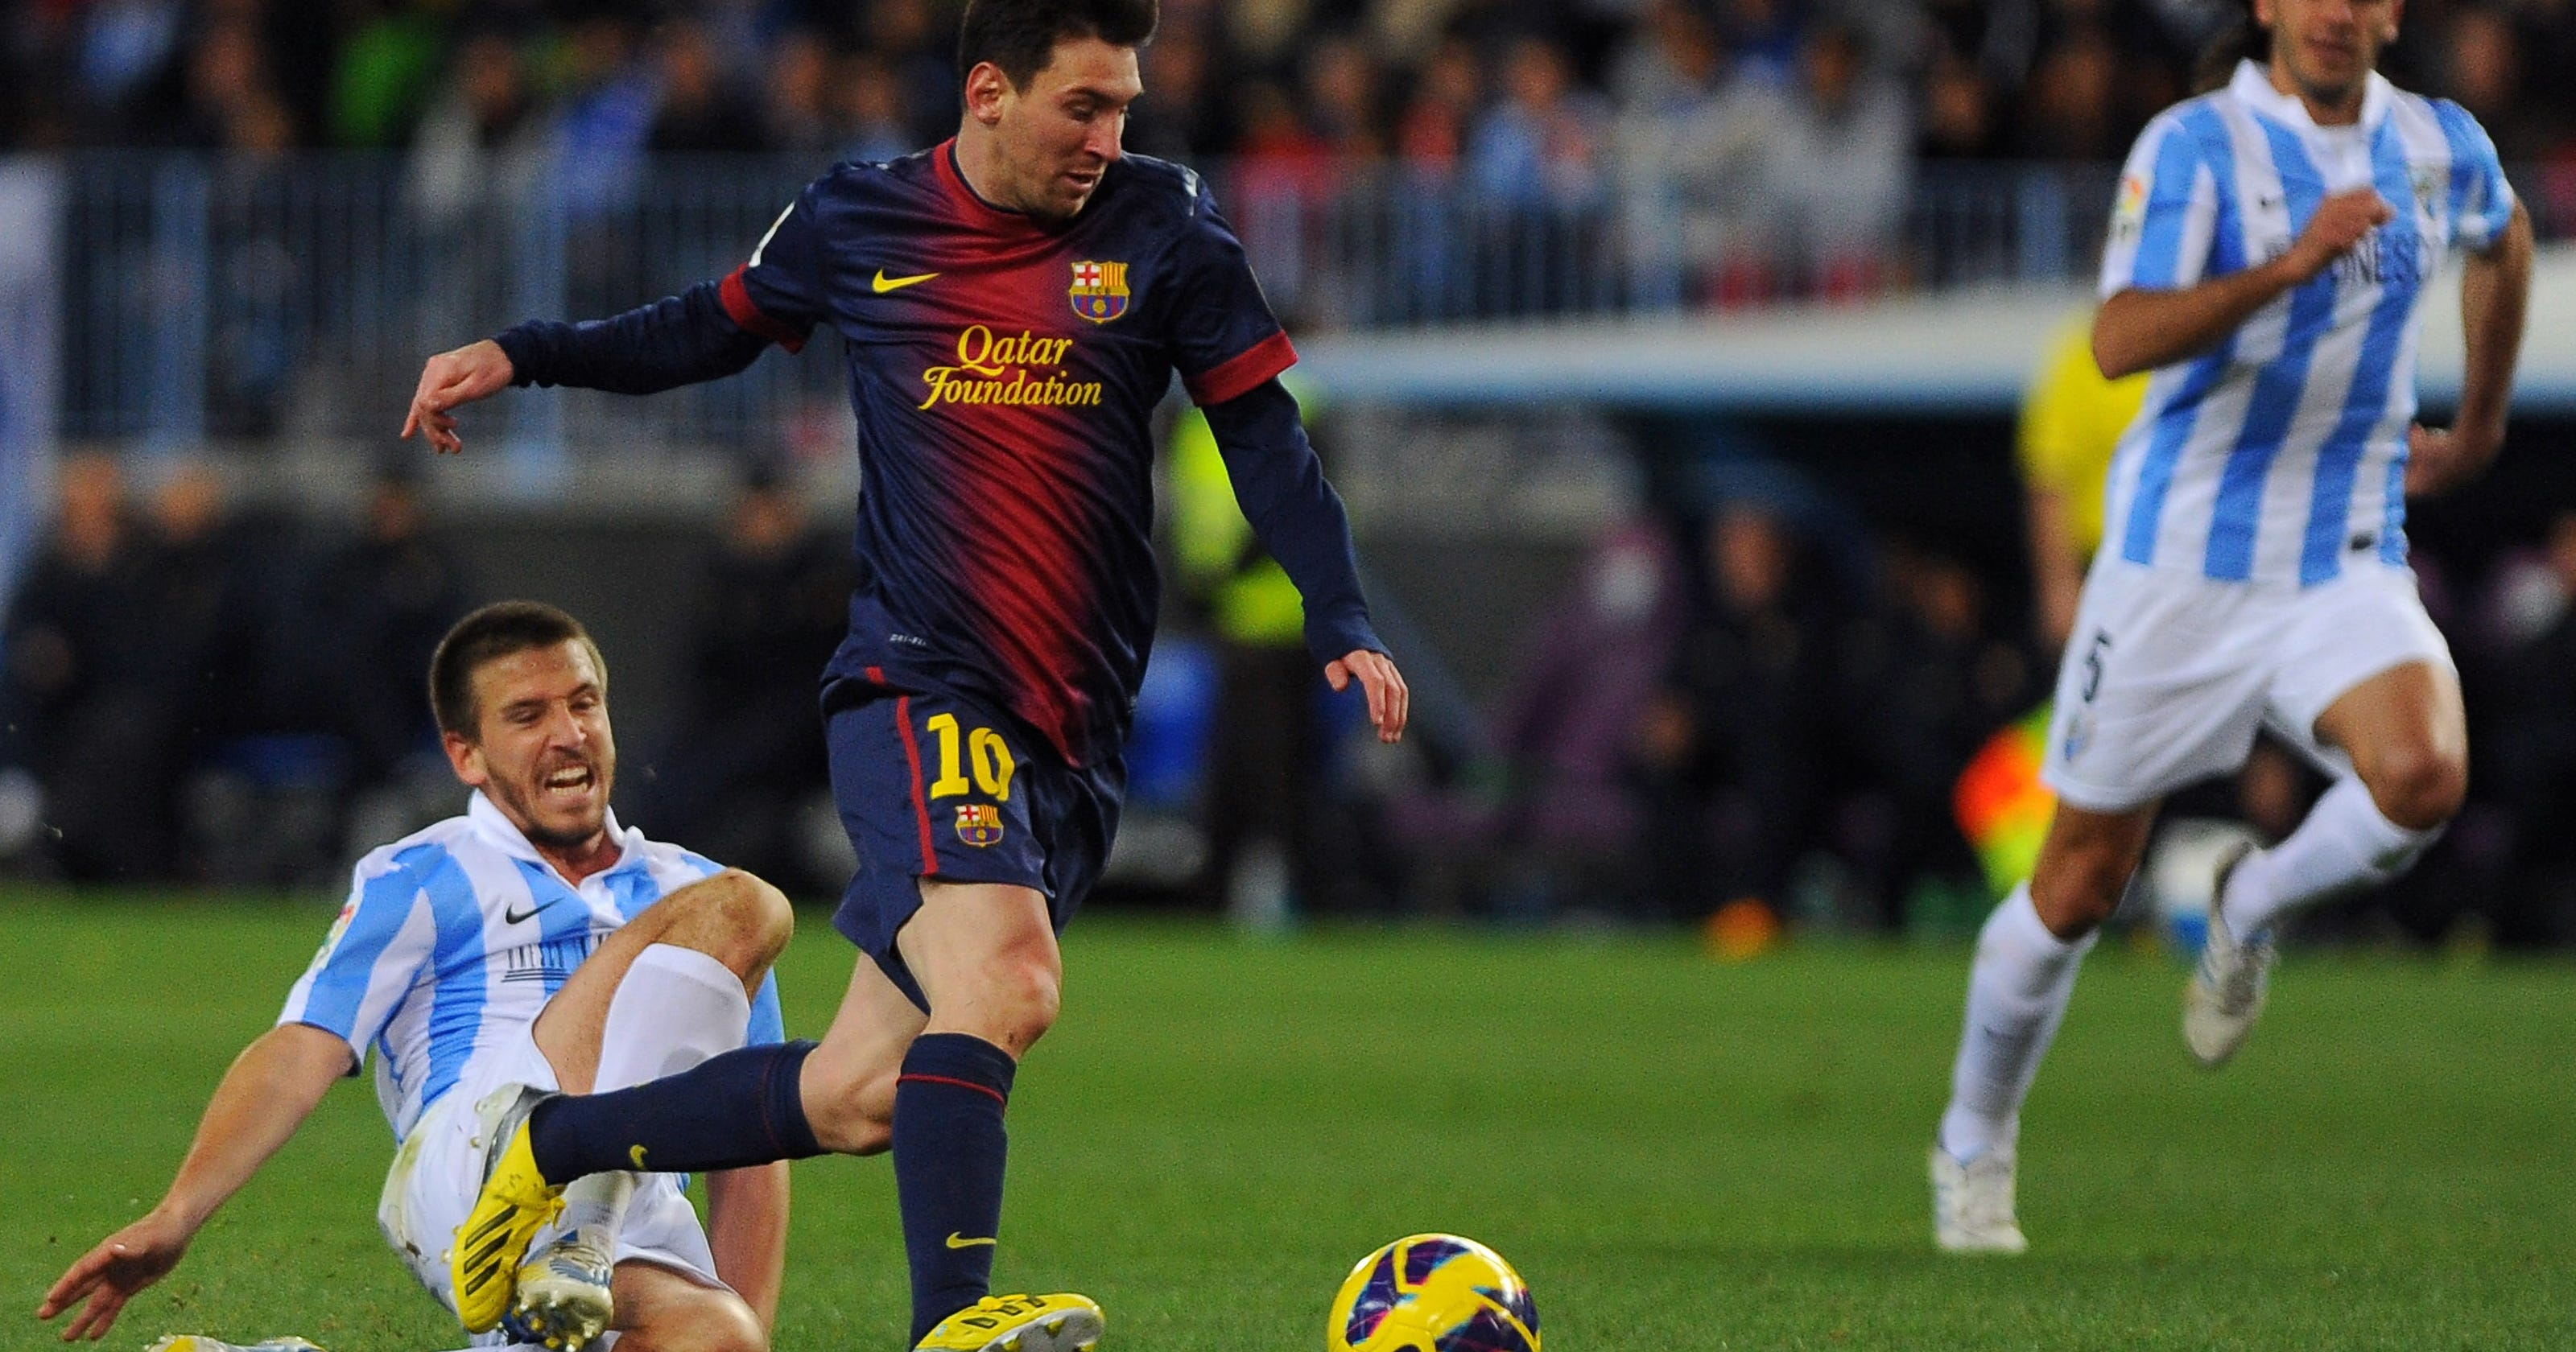 Lionel messi does it all as barcelona rolls at malaga - Firefly barcelona ...